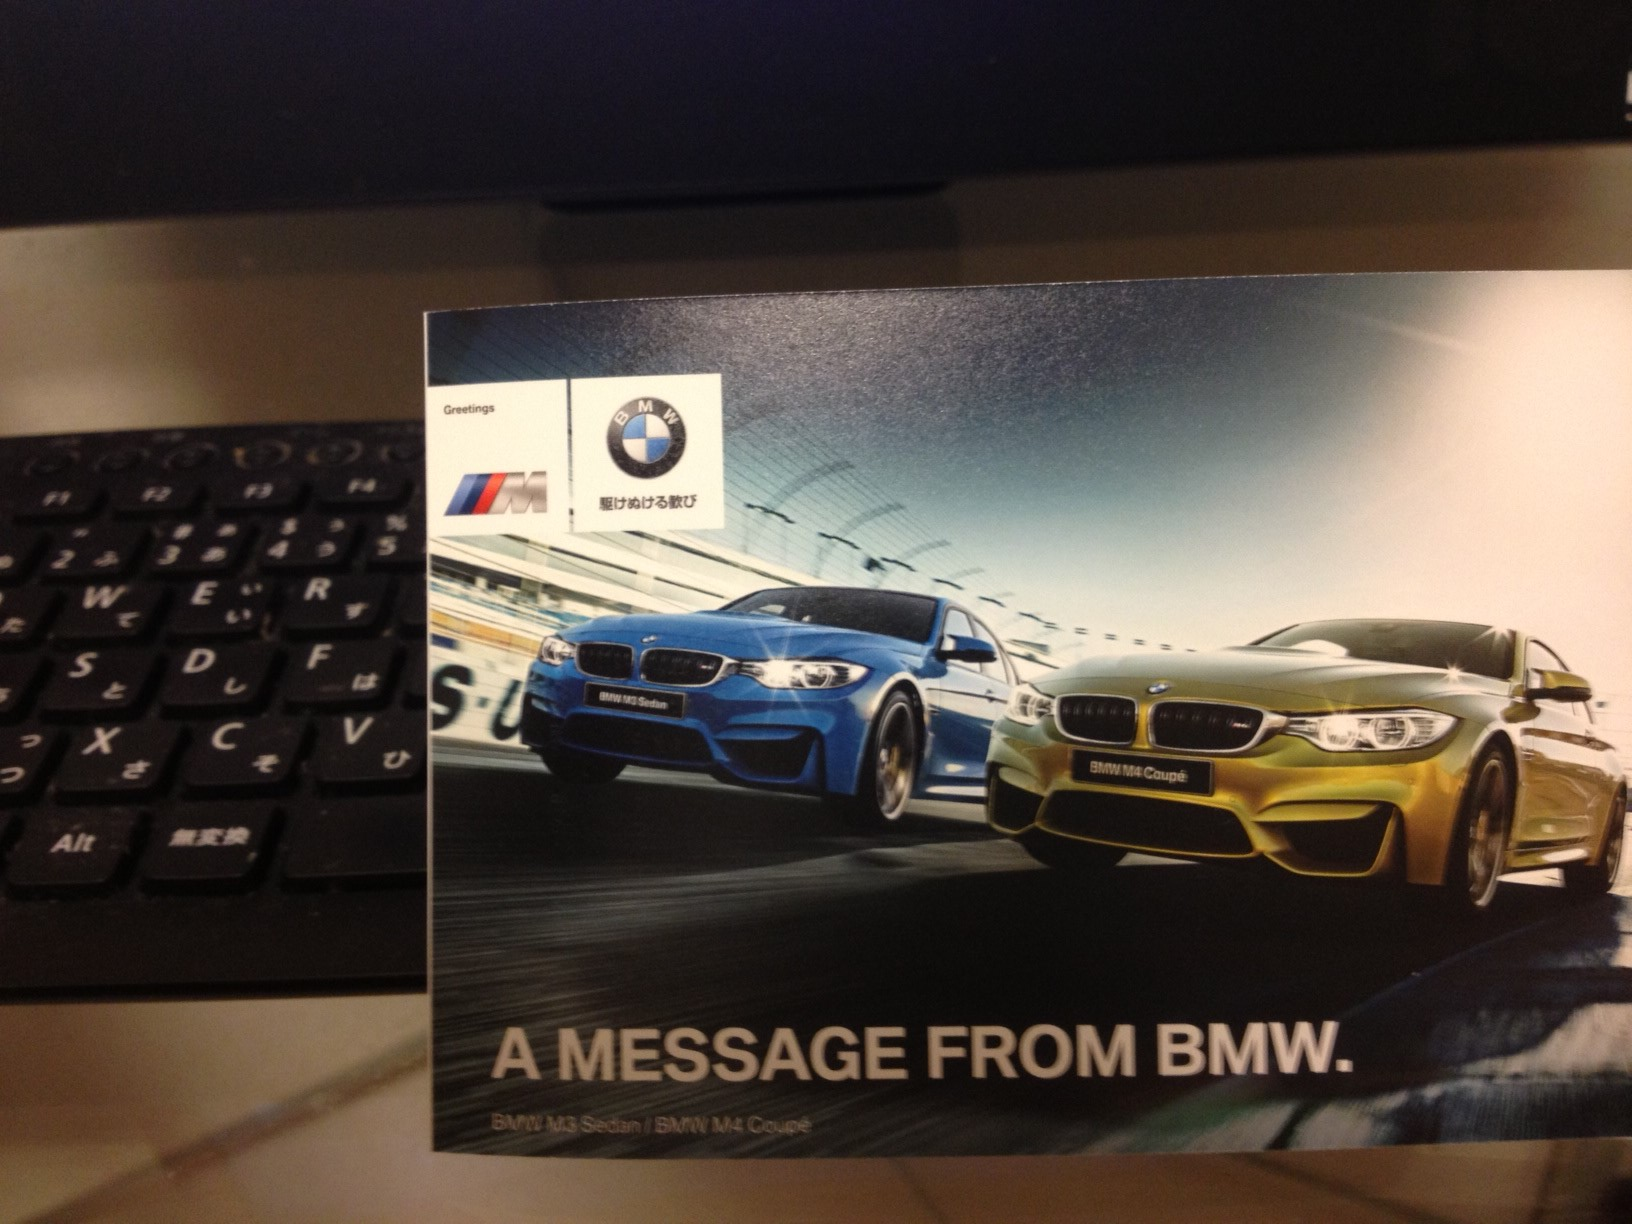 MESSAGE FROM BMW